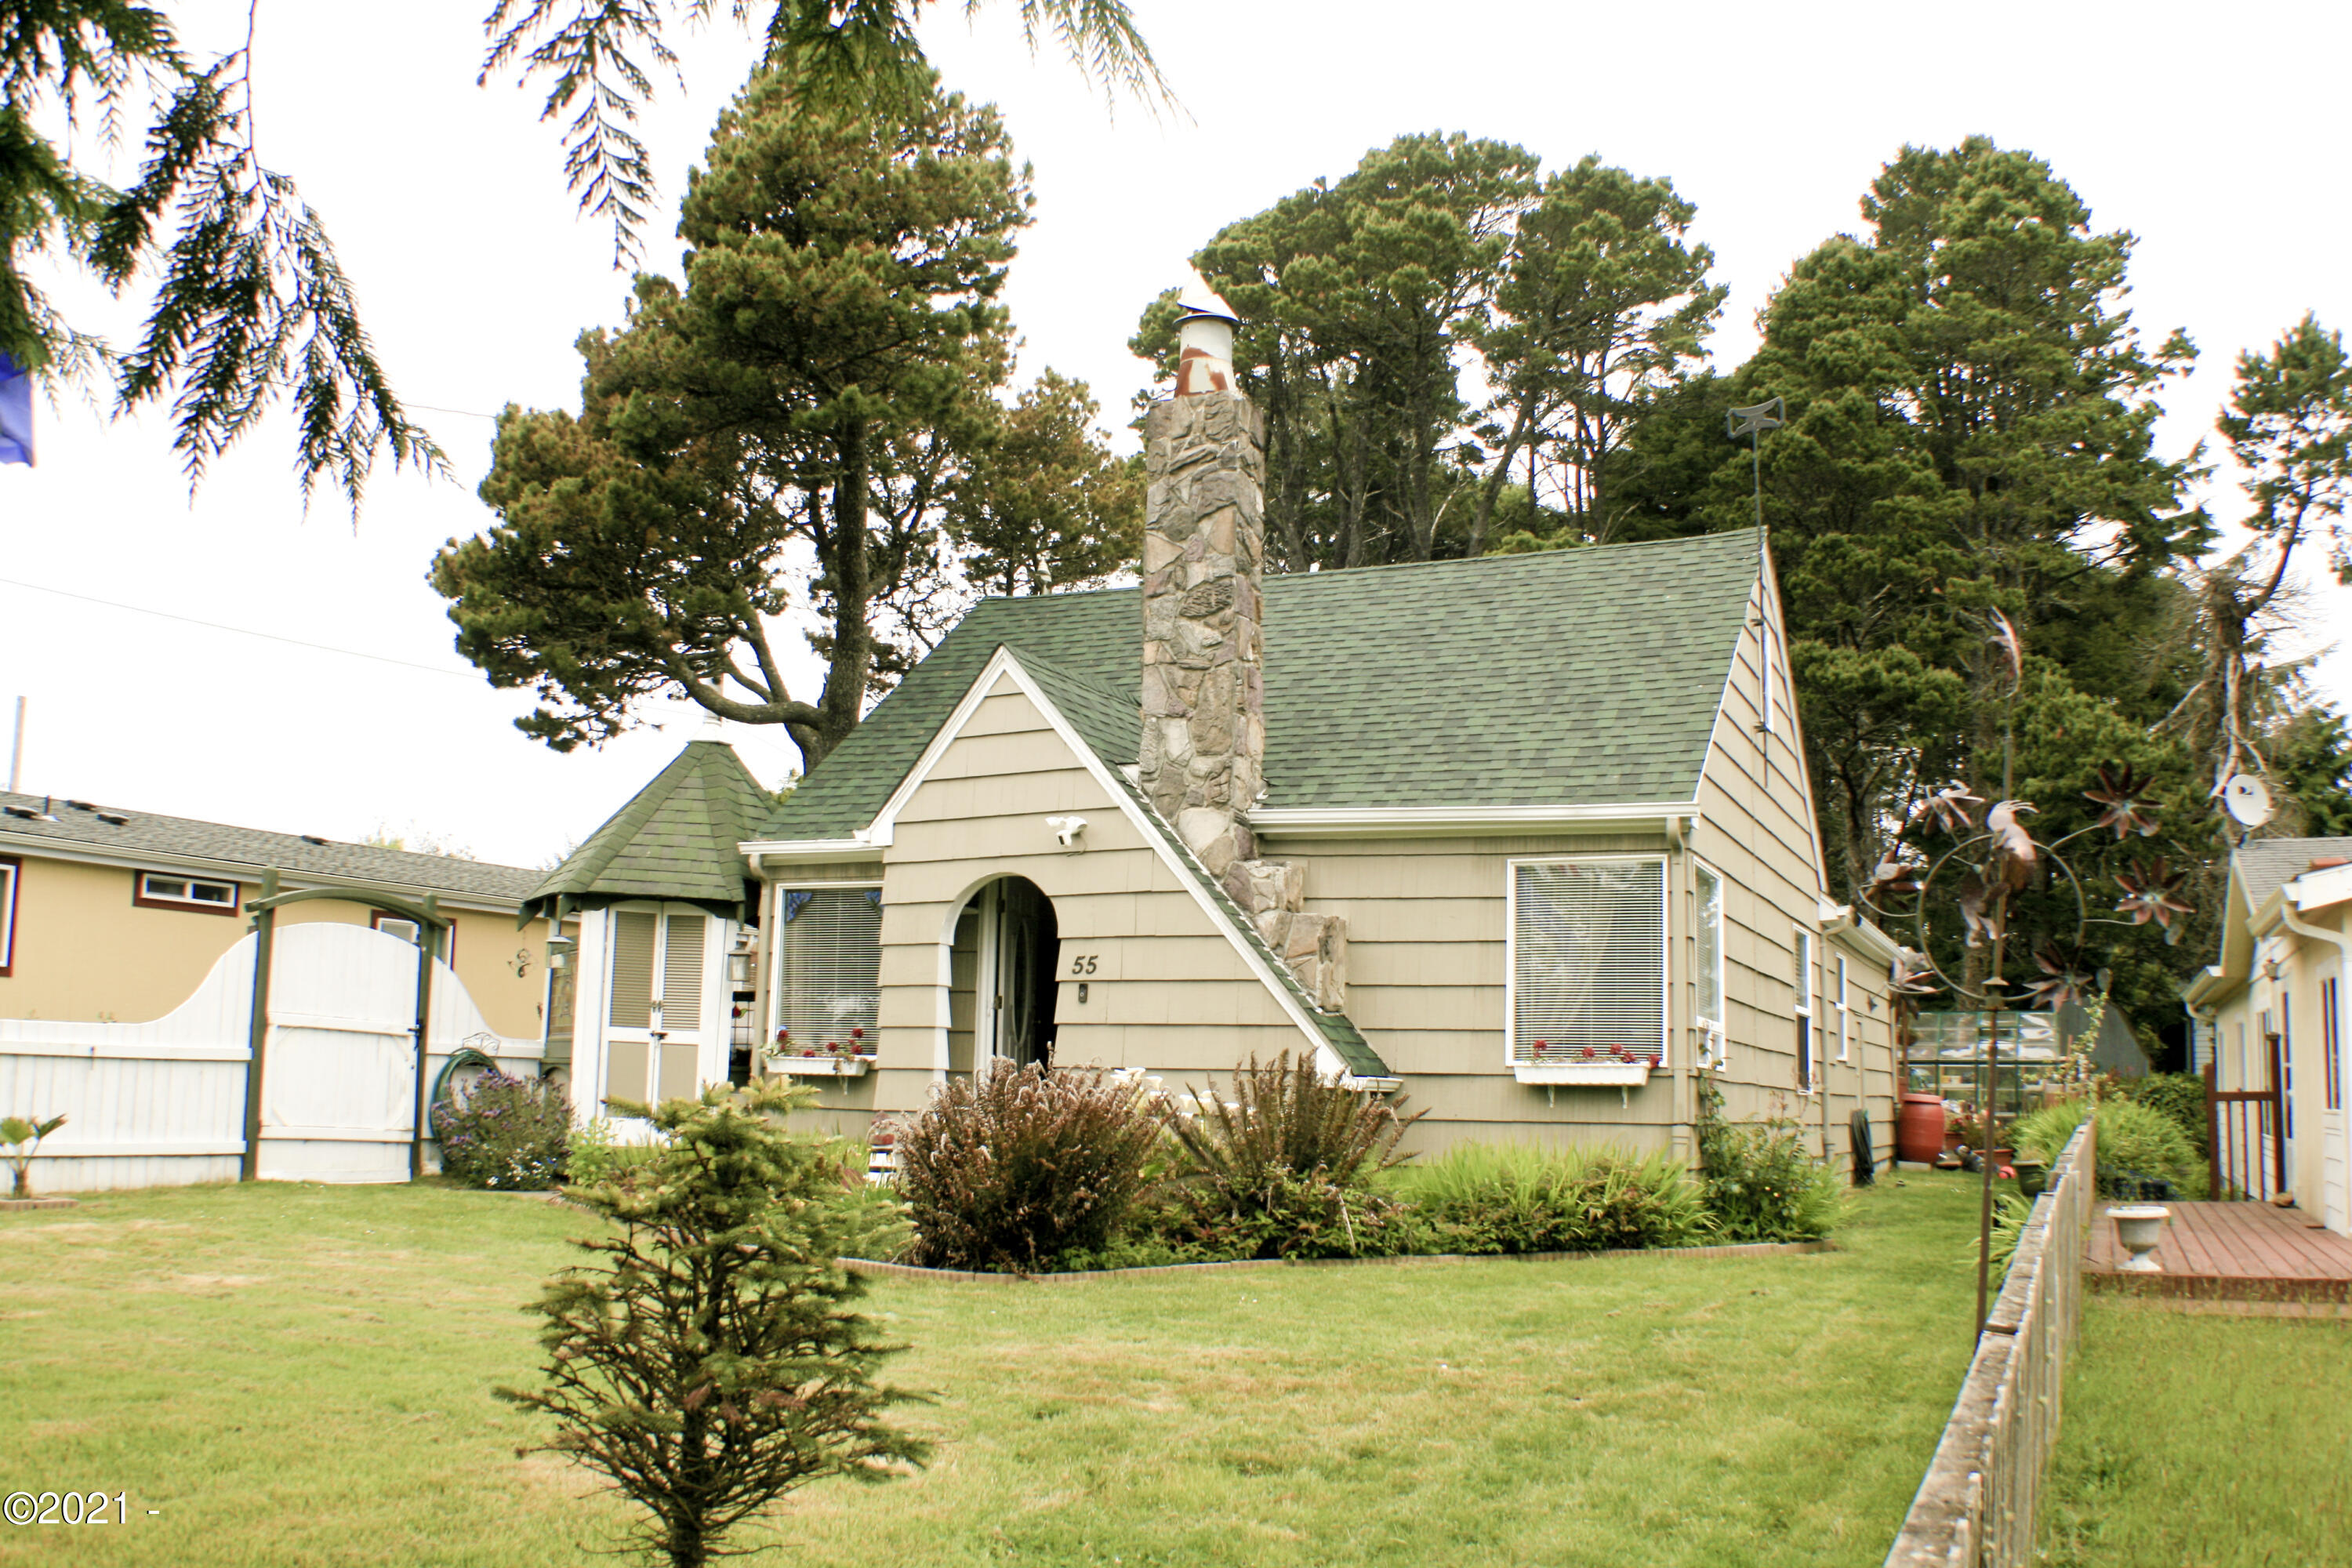 55 Breeze St, Depoe Bay, OR 97341 - Front Right Angle